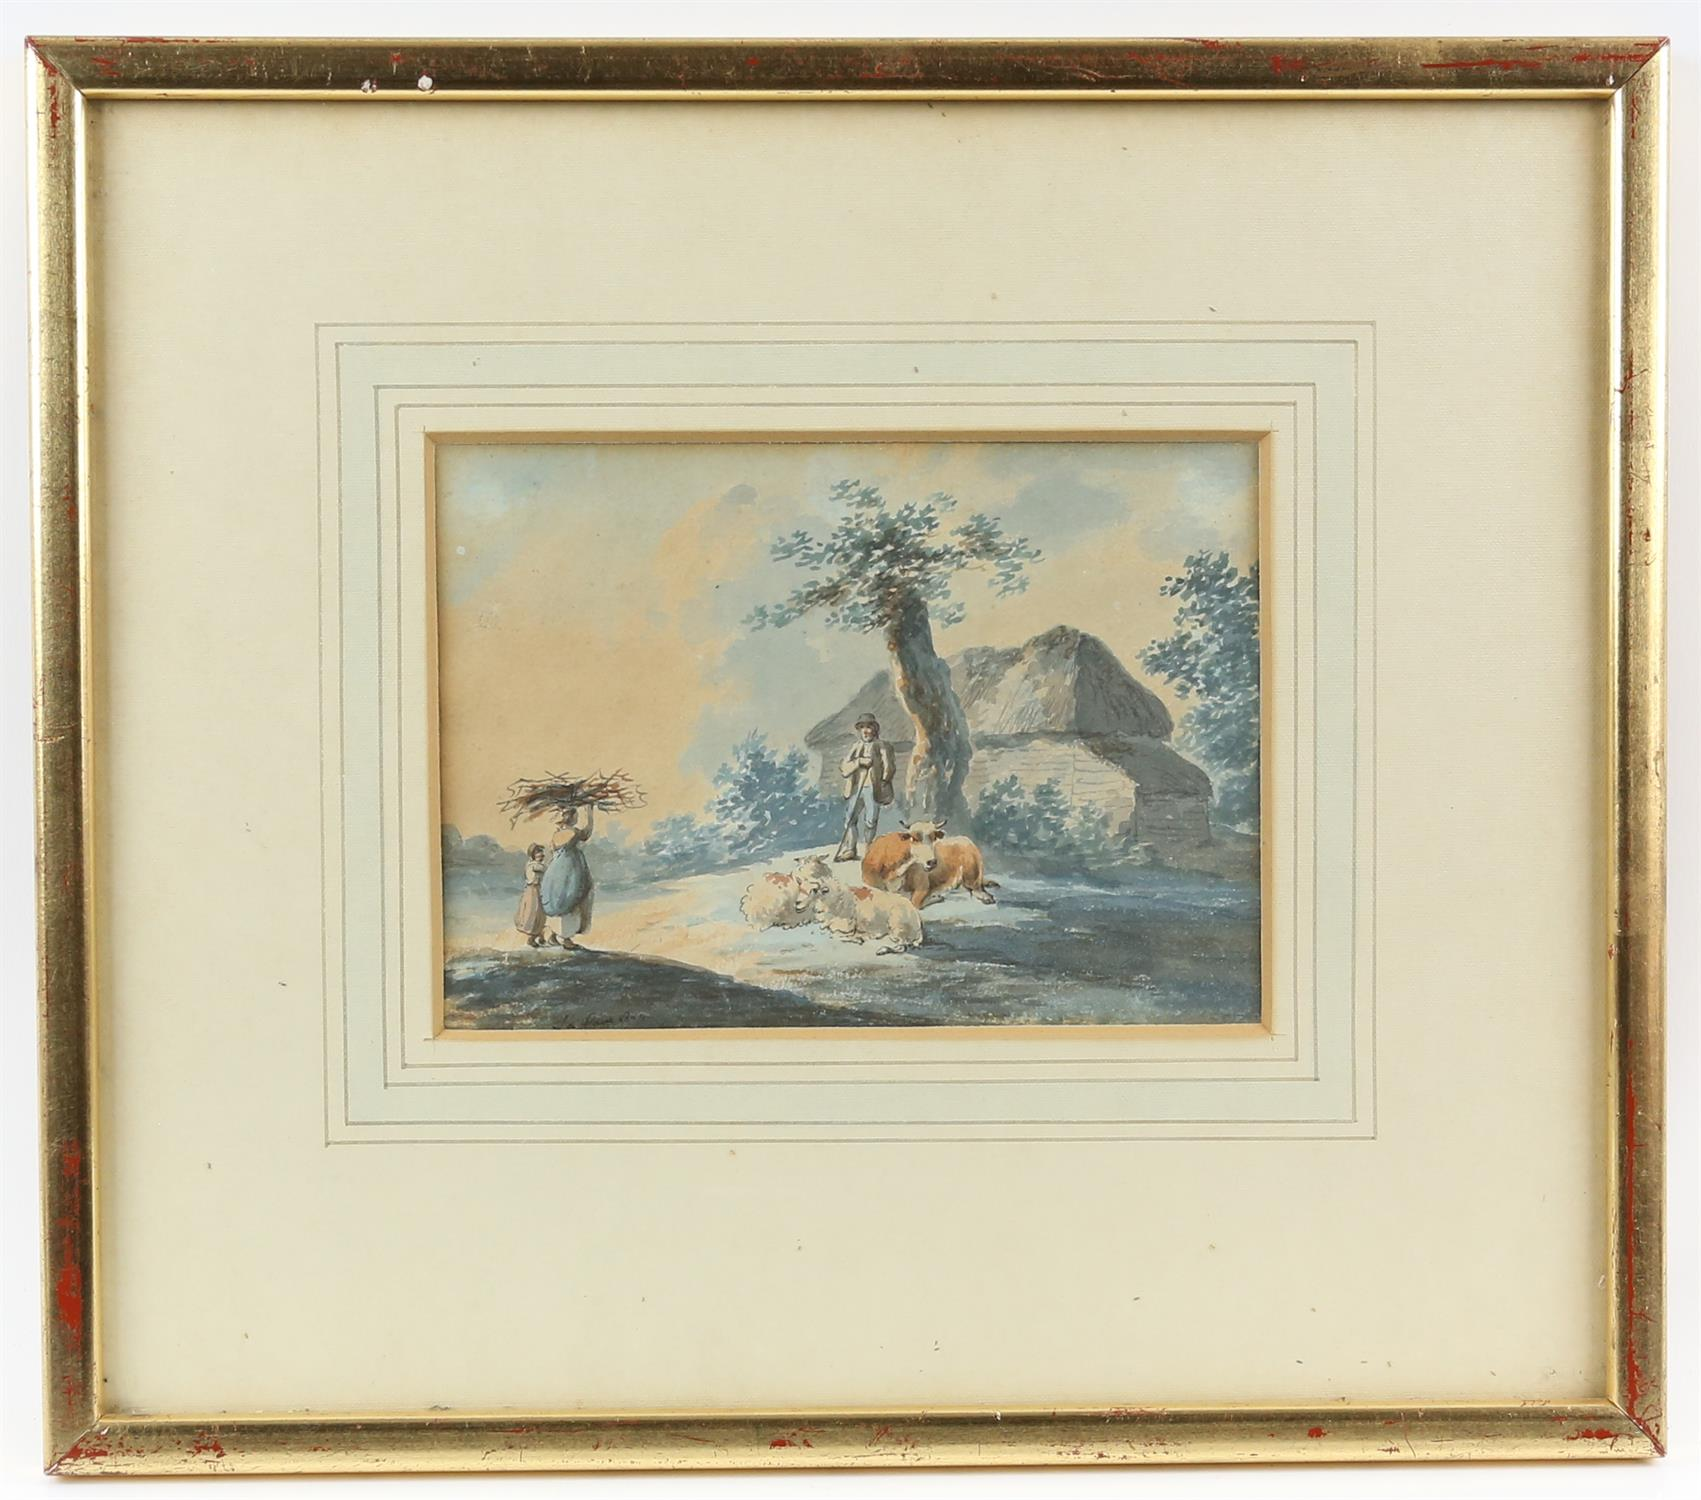 Peter La Cave, act. c. 1769-1816, 'Shepherd conversing with woman and child gathering twigs', - Image 2 of 3